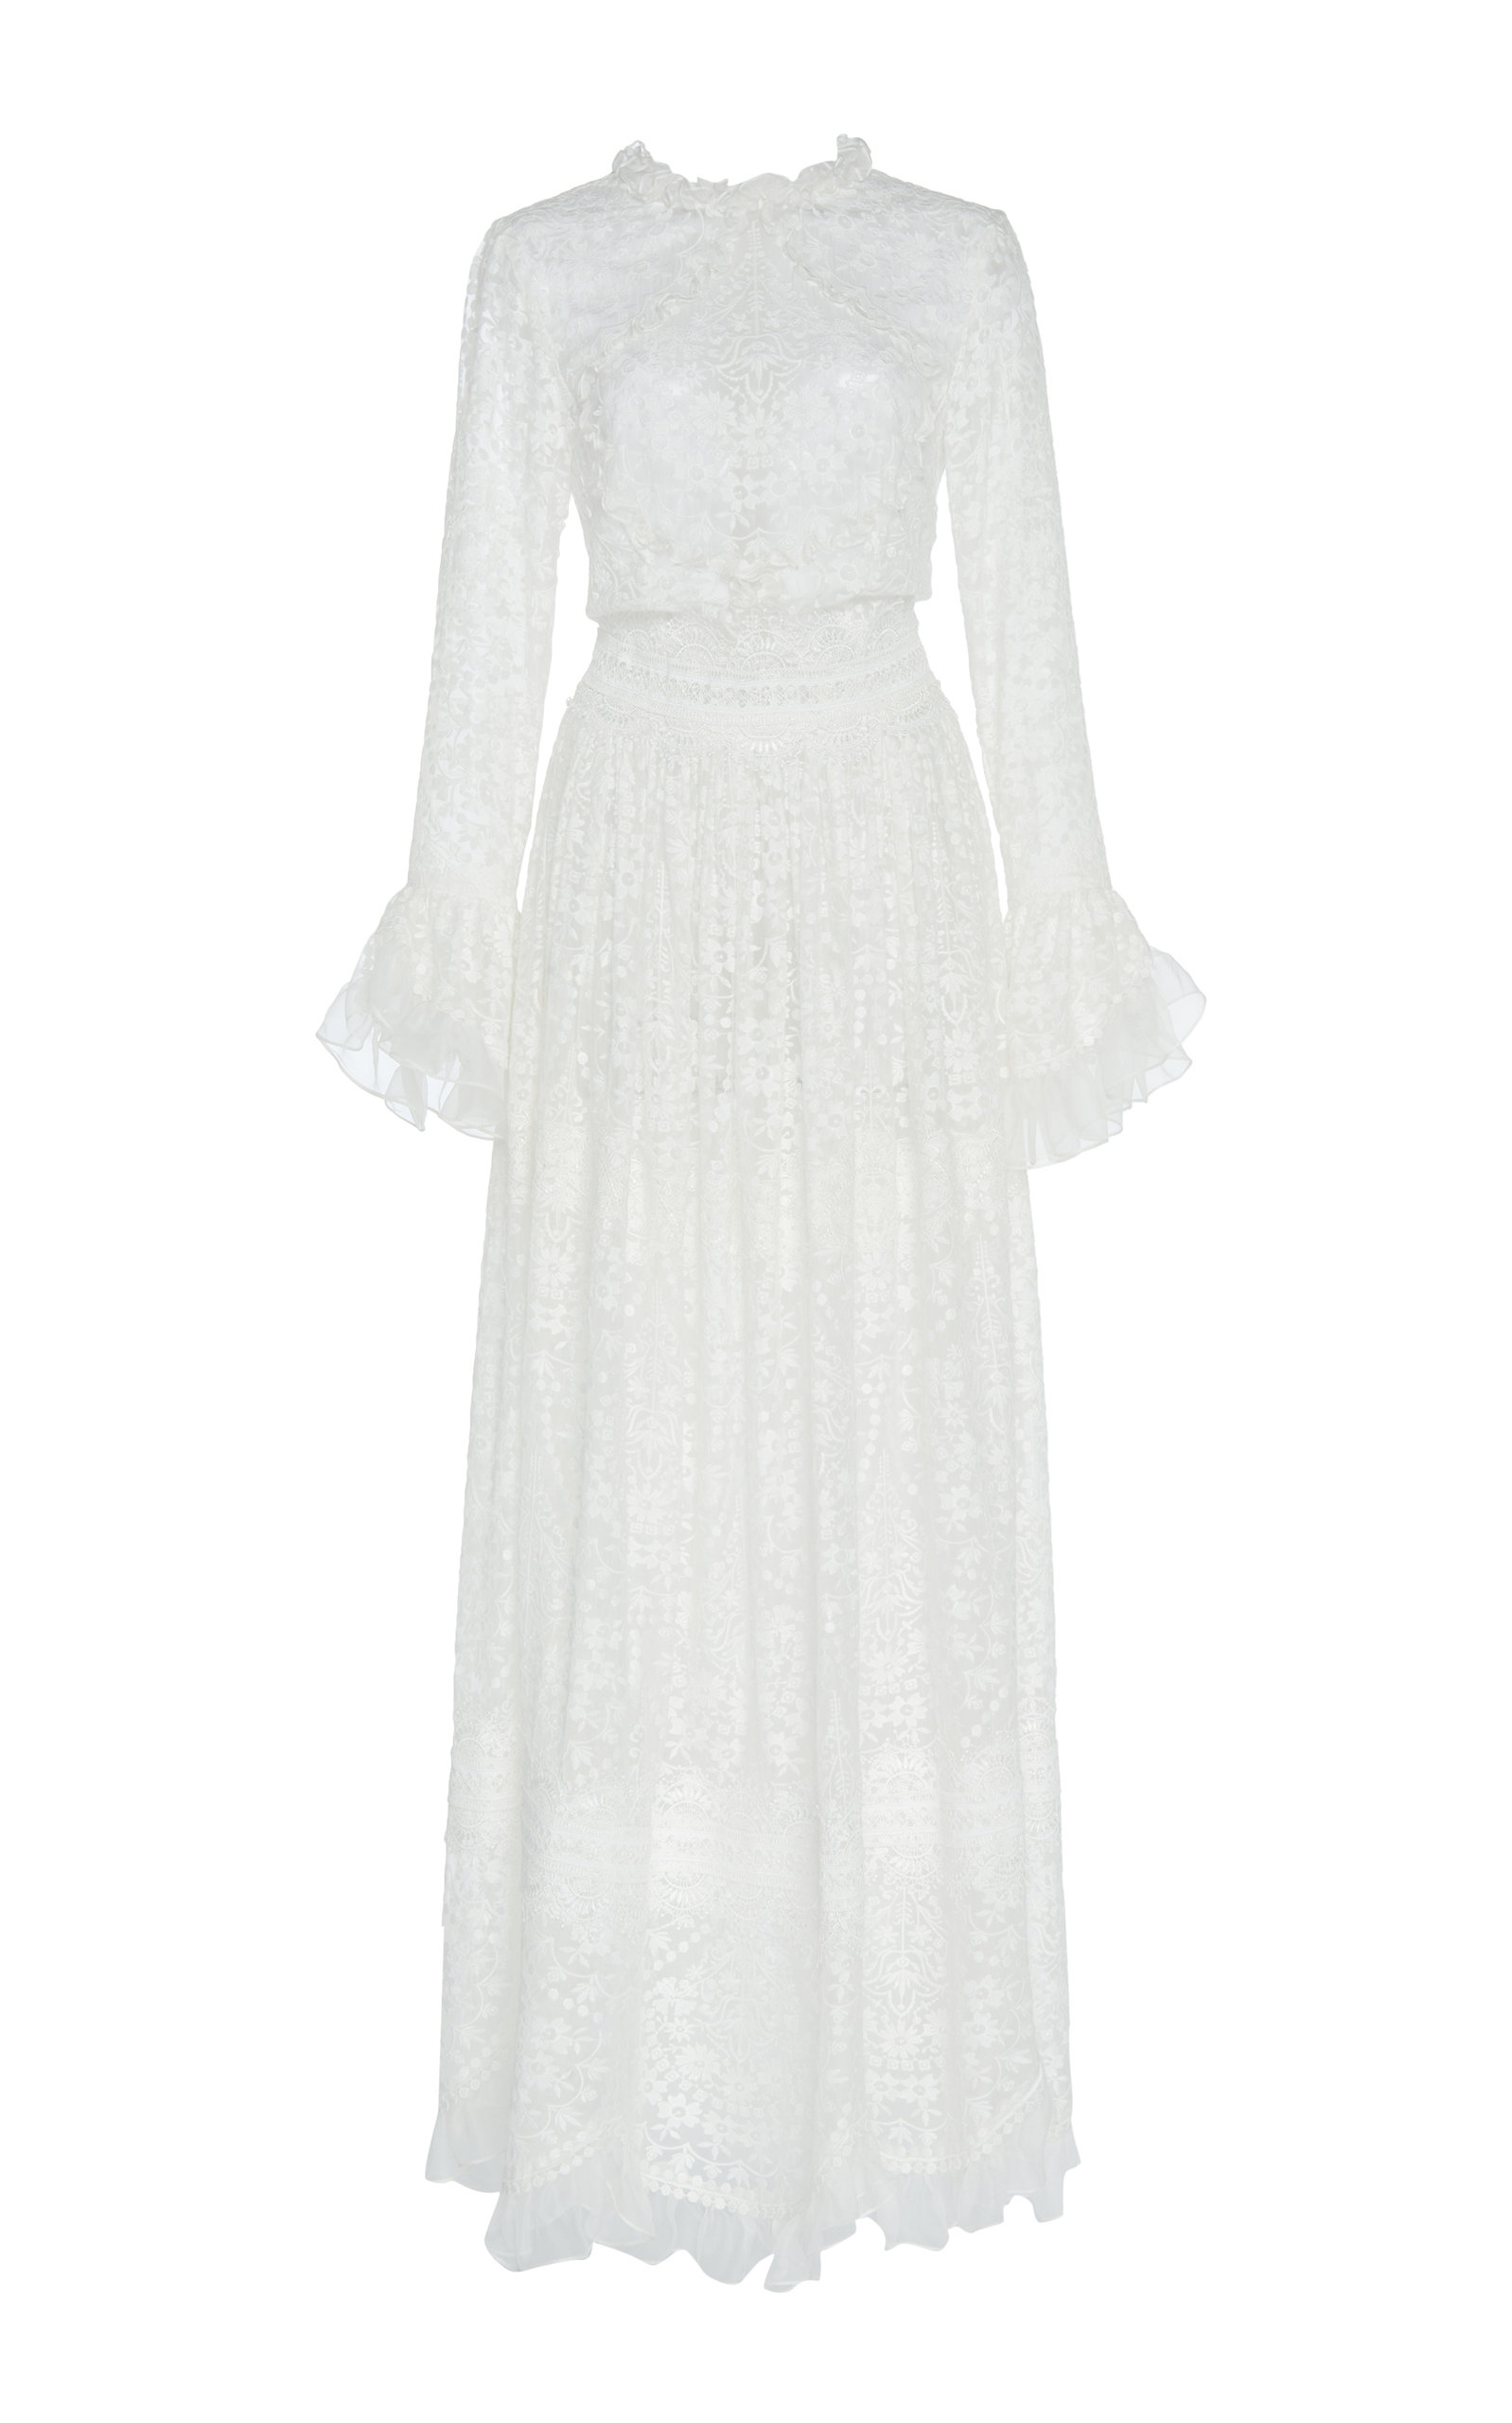 Buy Costarellos Ruffle-Trimmed Guipure Lace Maxi Dress online, shop Costarellos at the best price